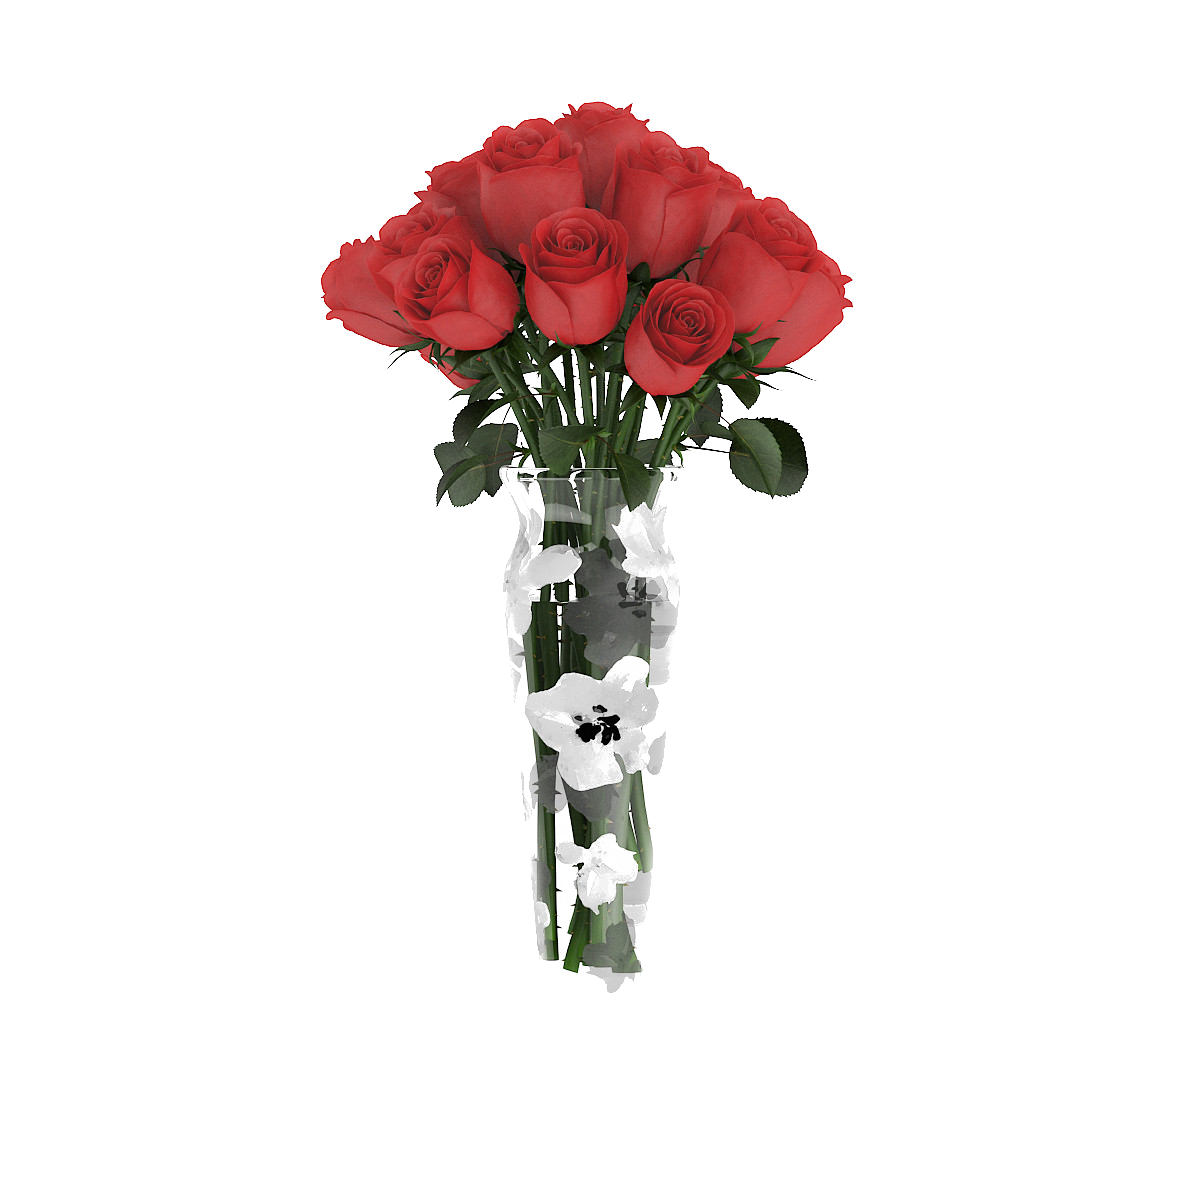 Flowers bouquet png transparent. Garden roses vase flower